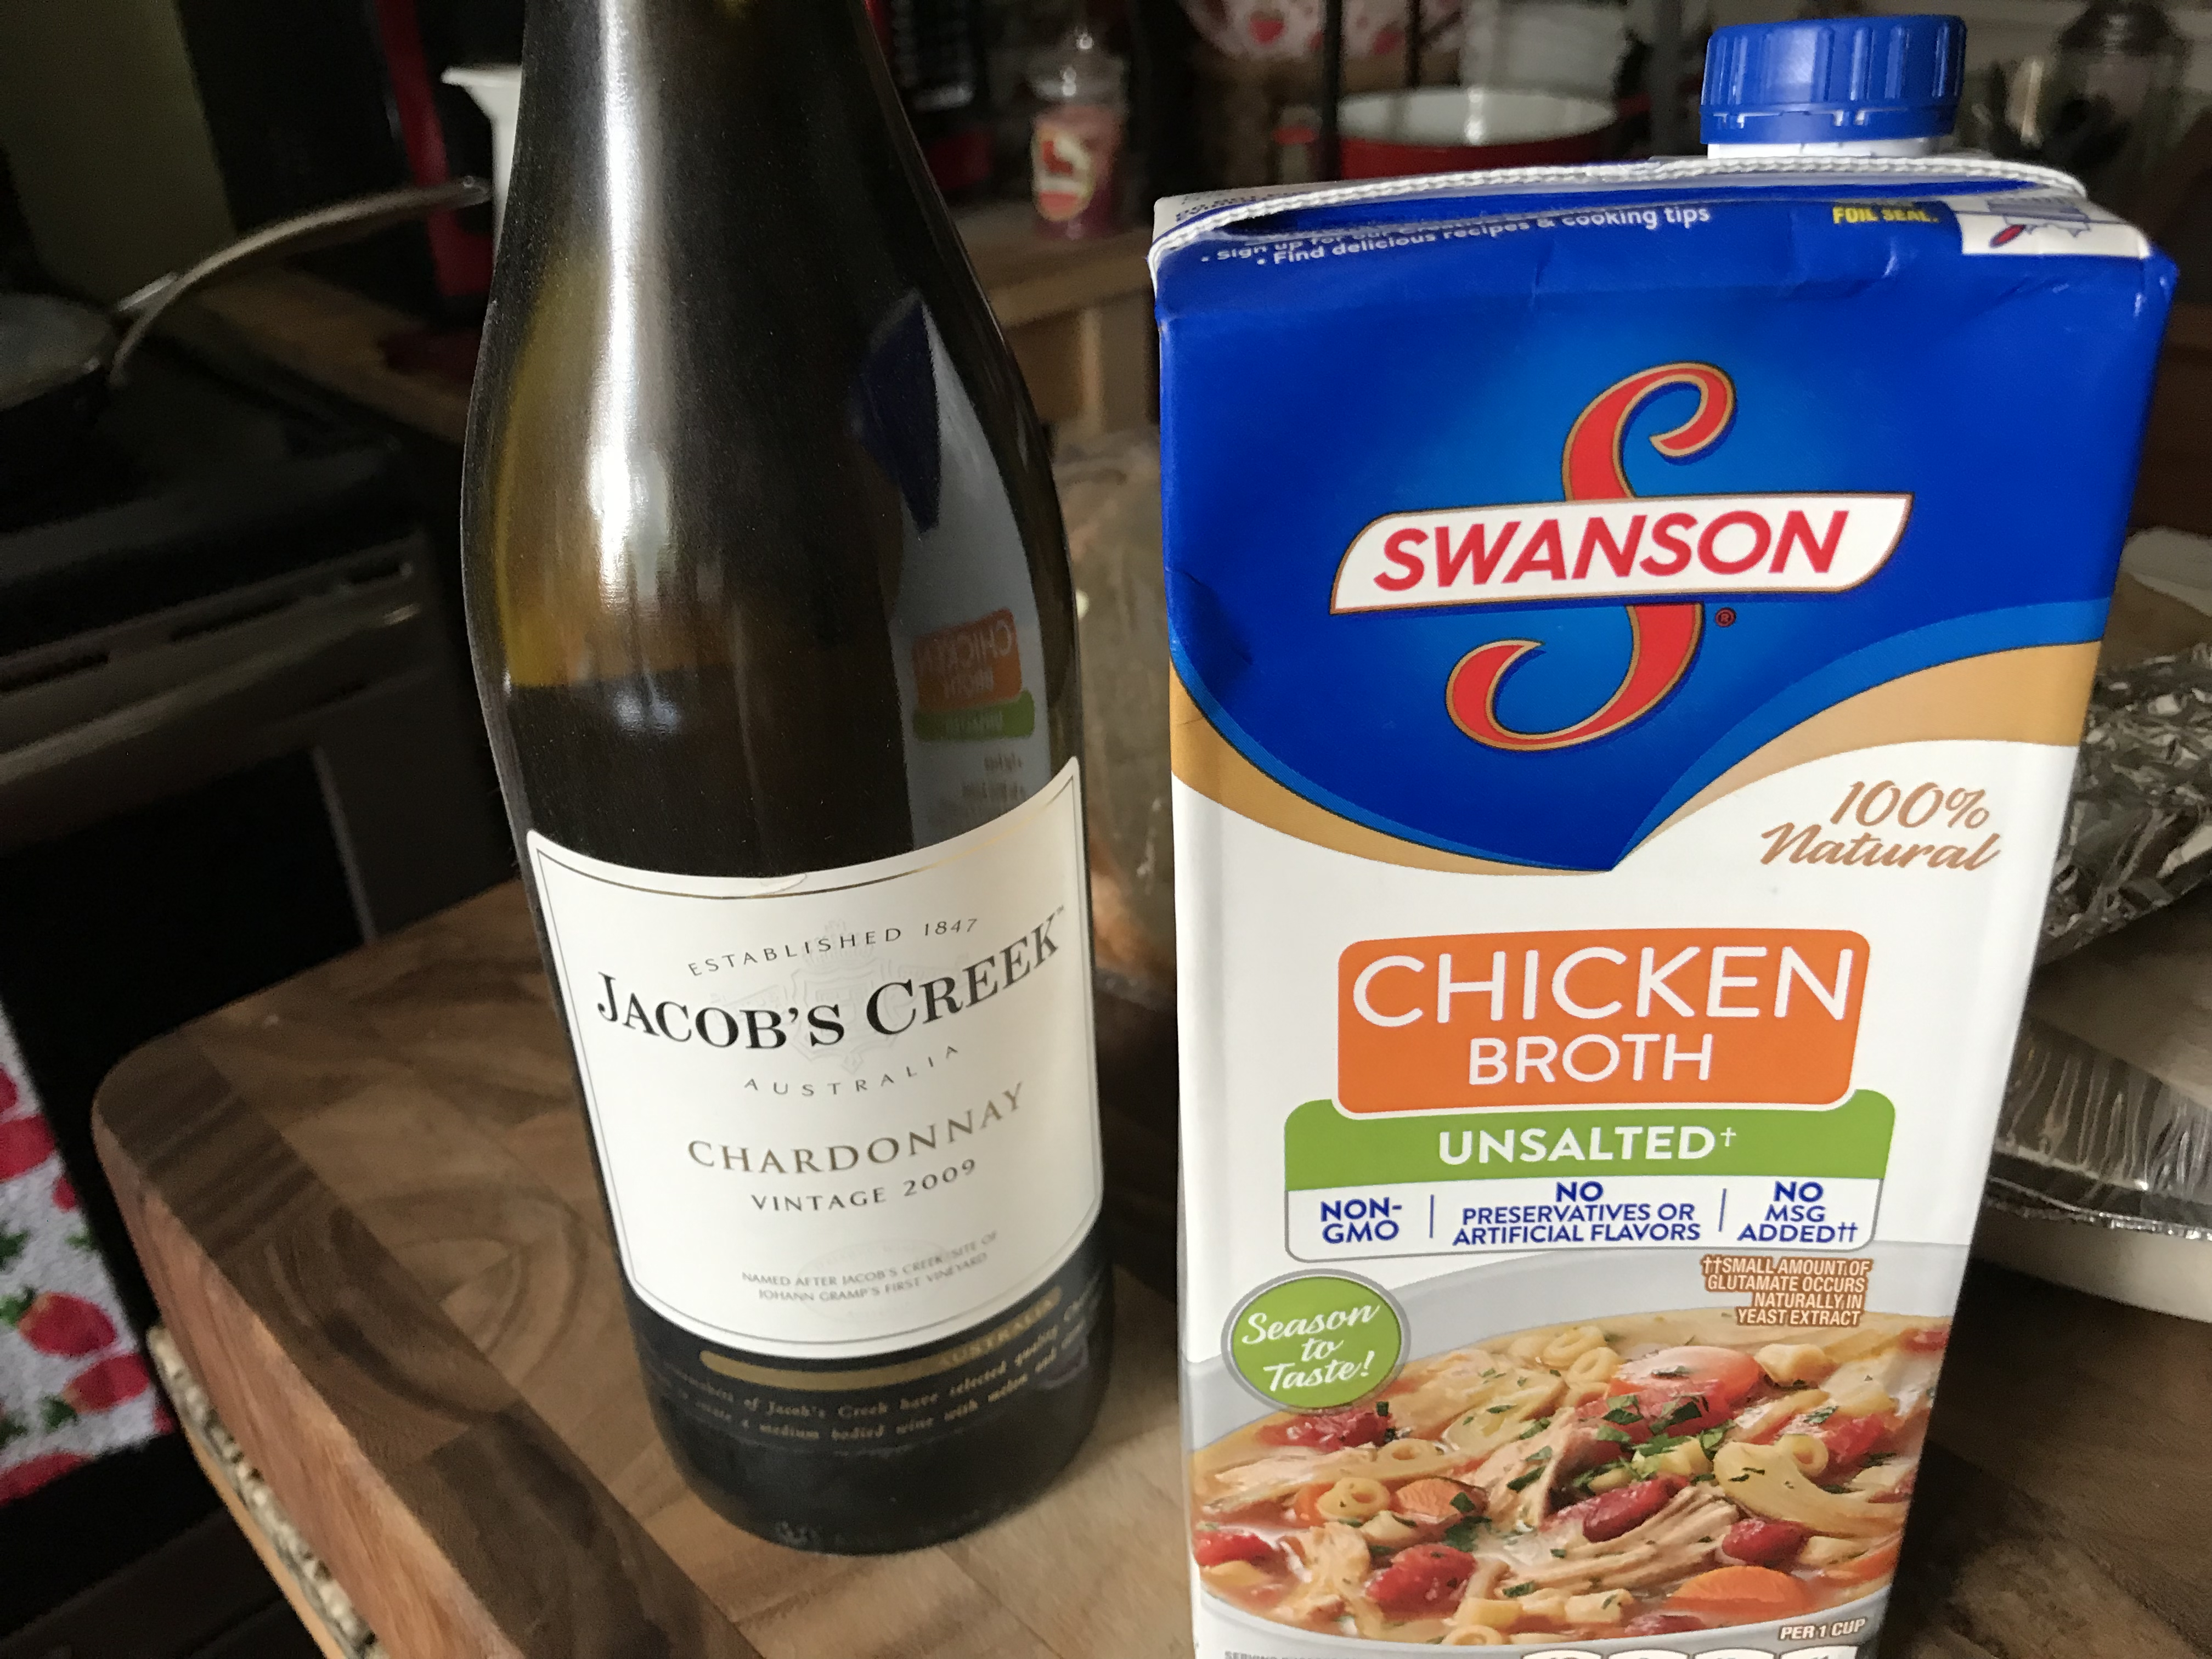 White Wine And Unsalted Chicken Broth